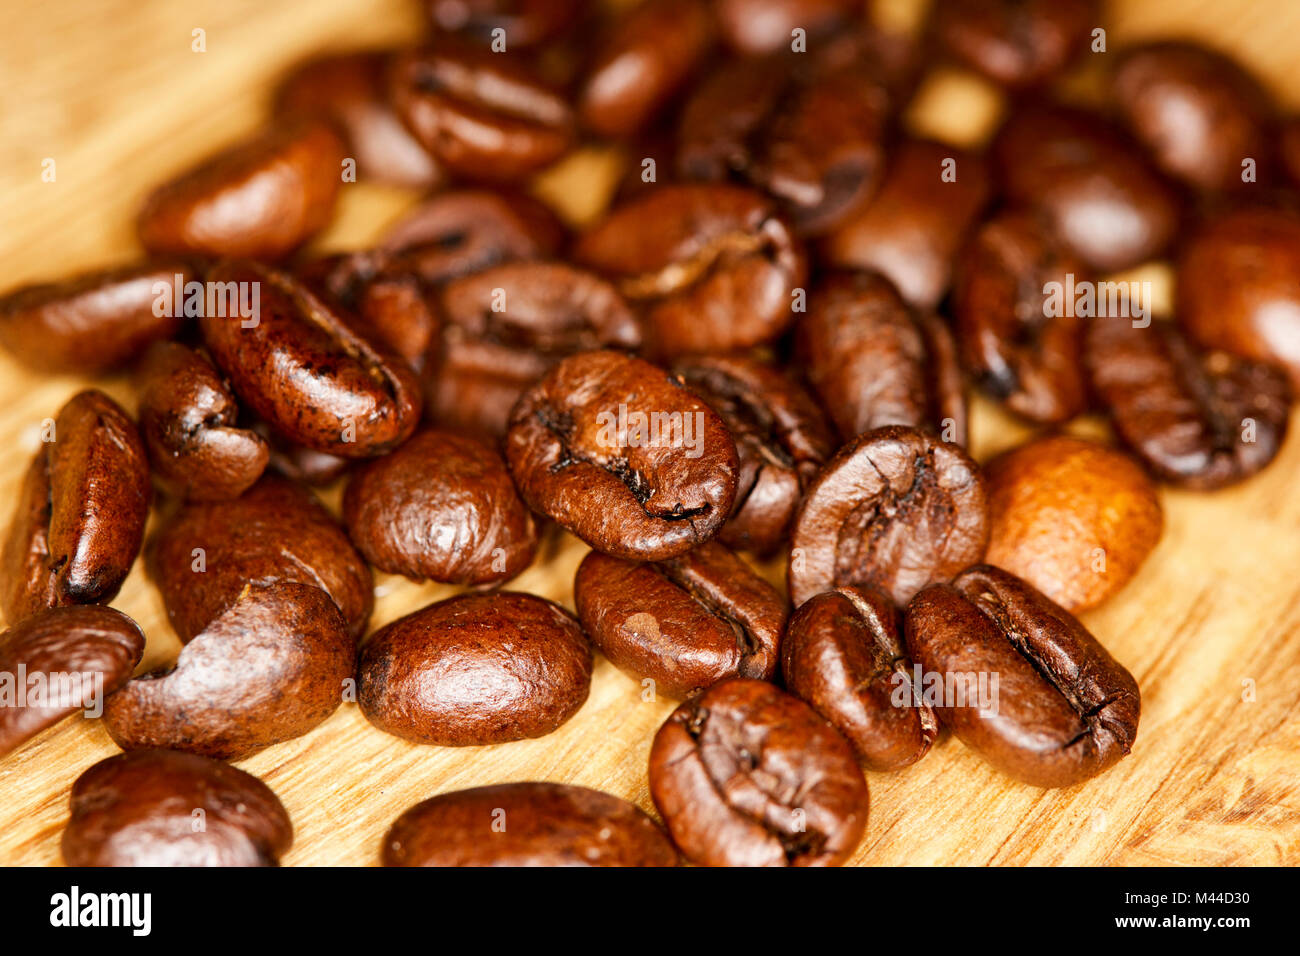 Robusta Coffee Stock Photos Images Alamy Green Bean Kopi Diet Java Arabica And Mix Of Shiny Roasted Beans Image